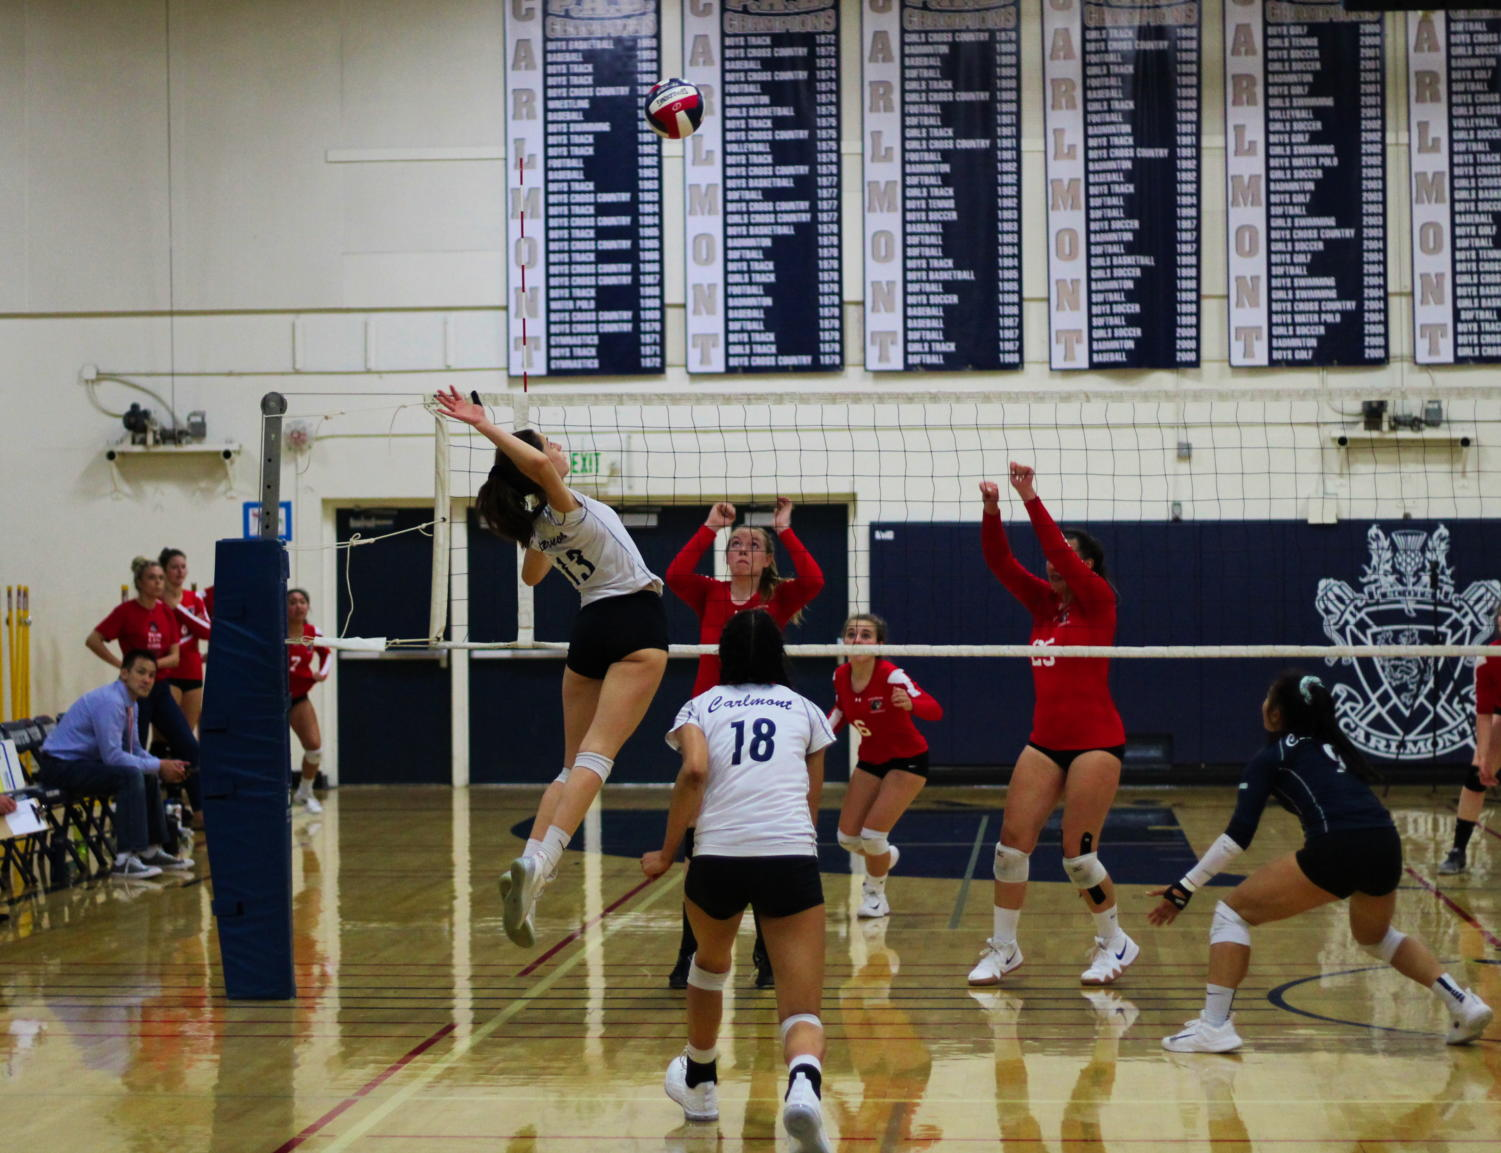 Sophomore Leah McMillen jumps to get a kill against the Burlingame Panthers.